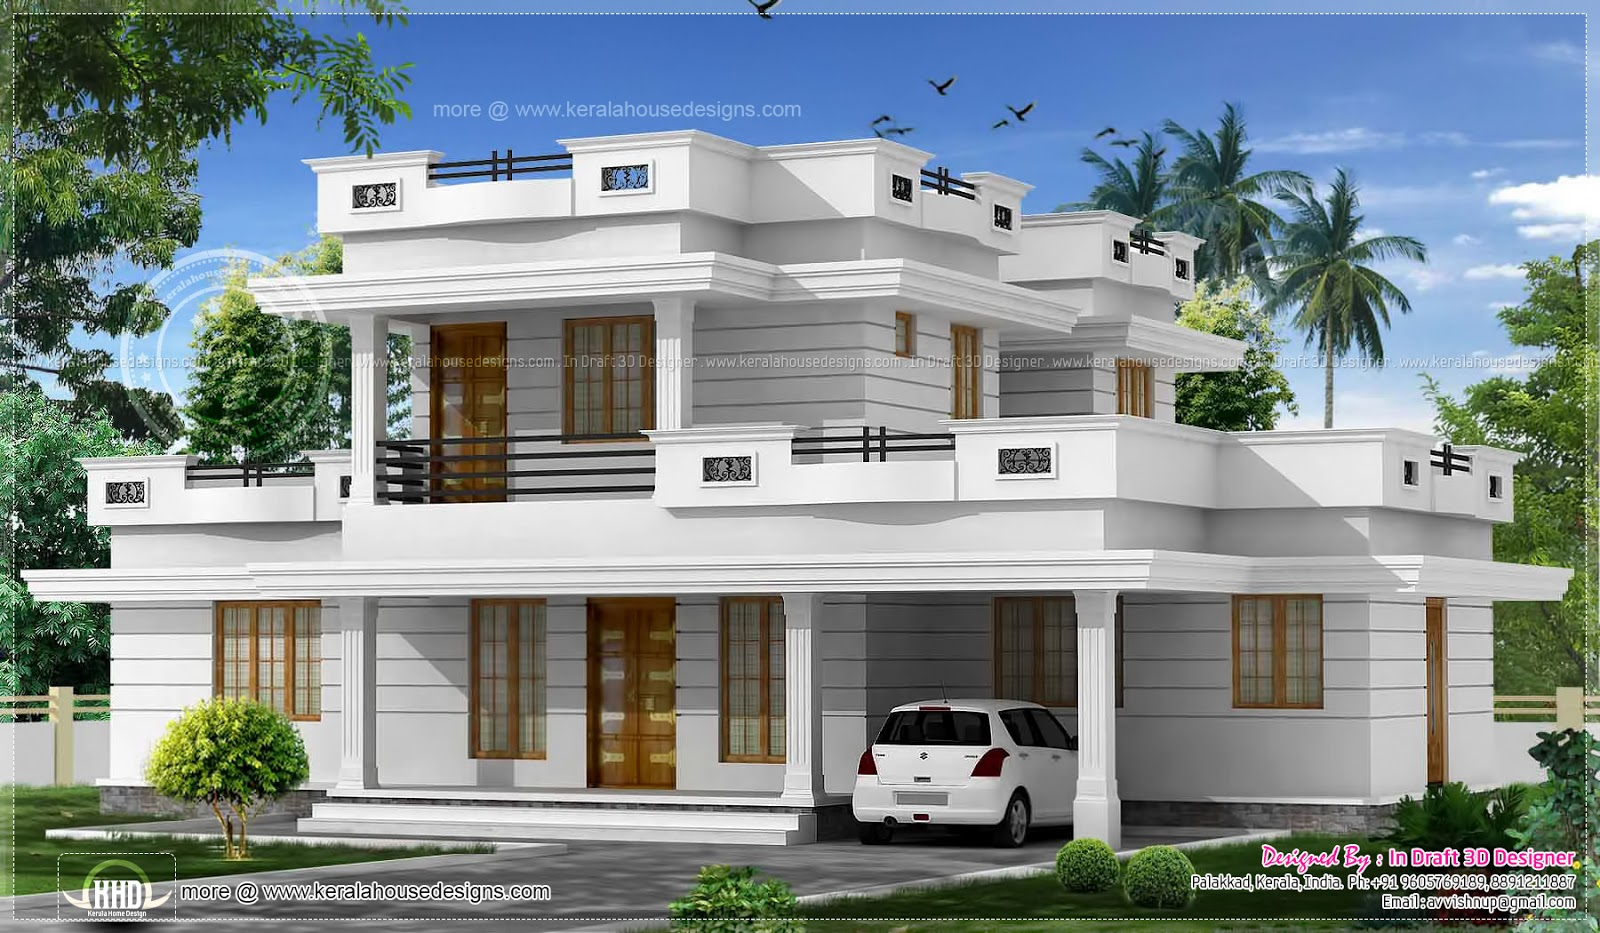 3 bed room flat roof villa with courtyard 2172 sq ft for Flat roof home plans